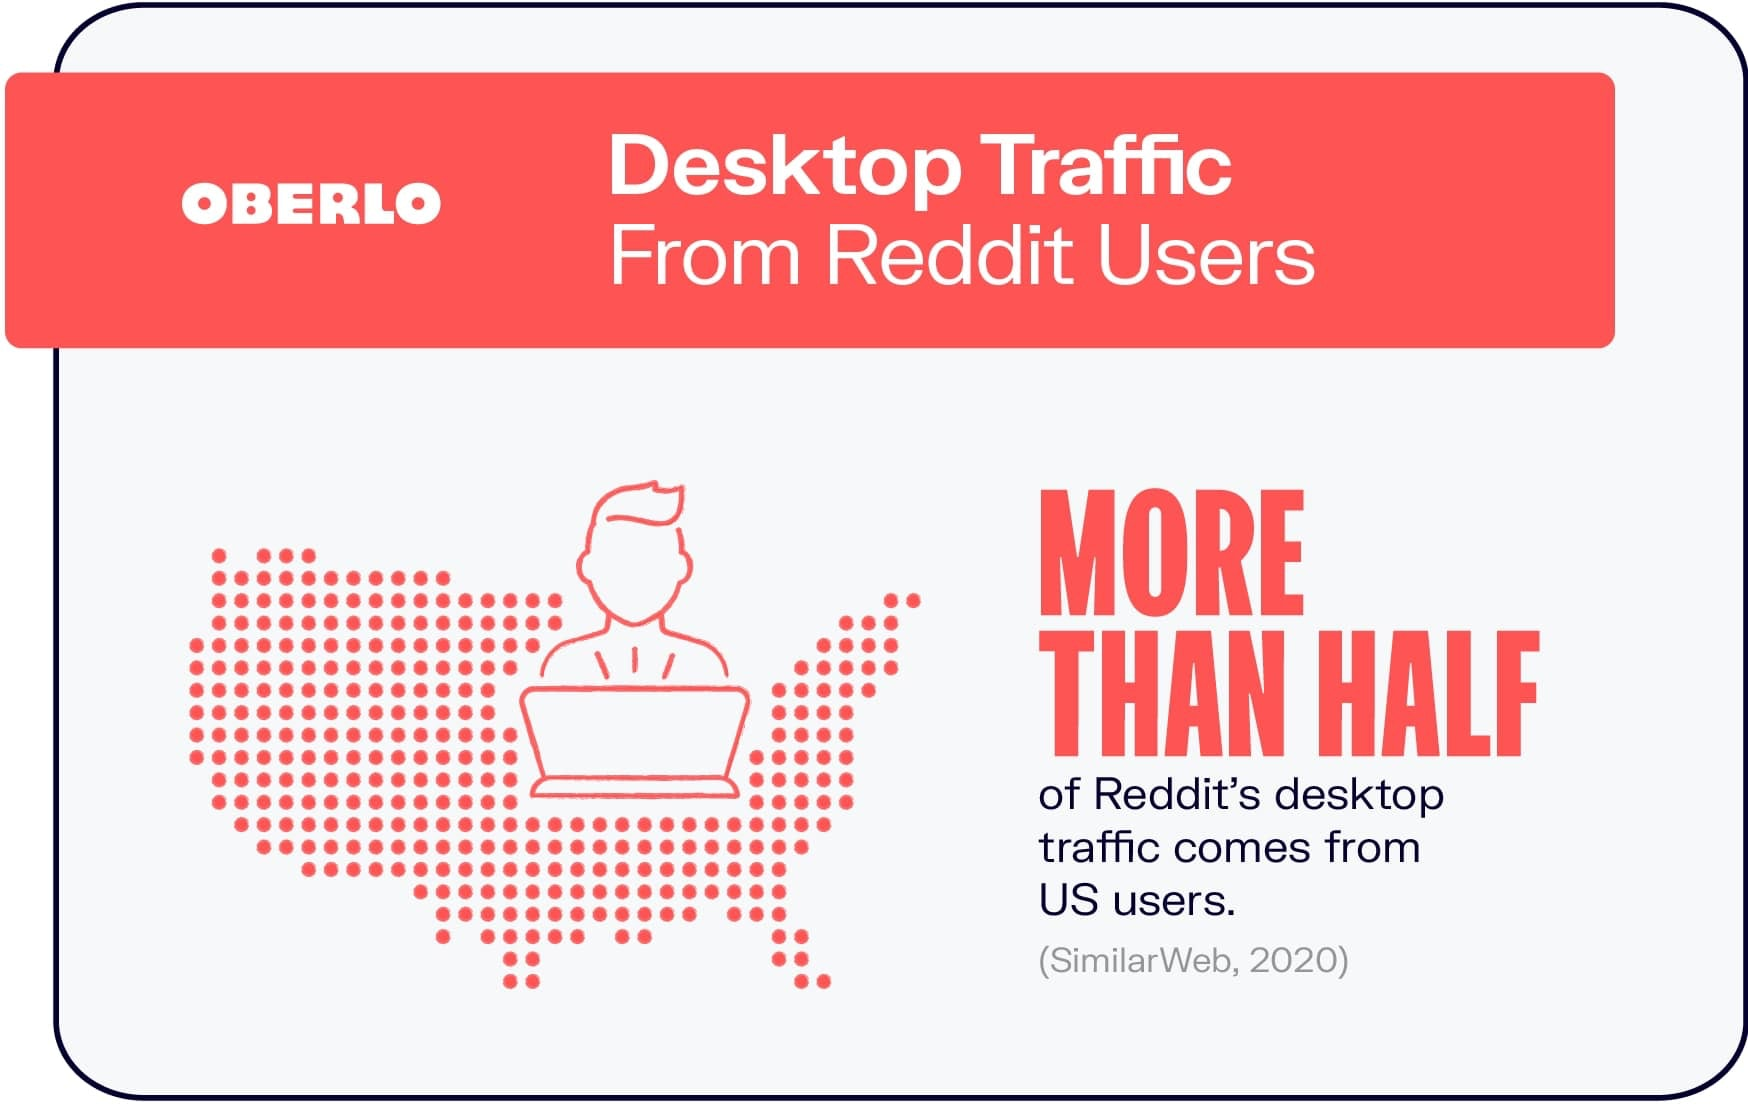 Desktop Traffic From Reddit Users